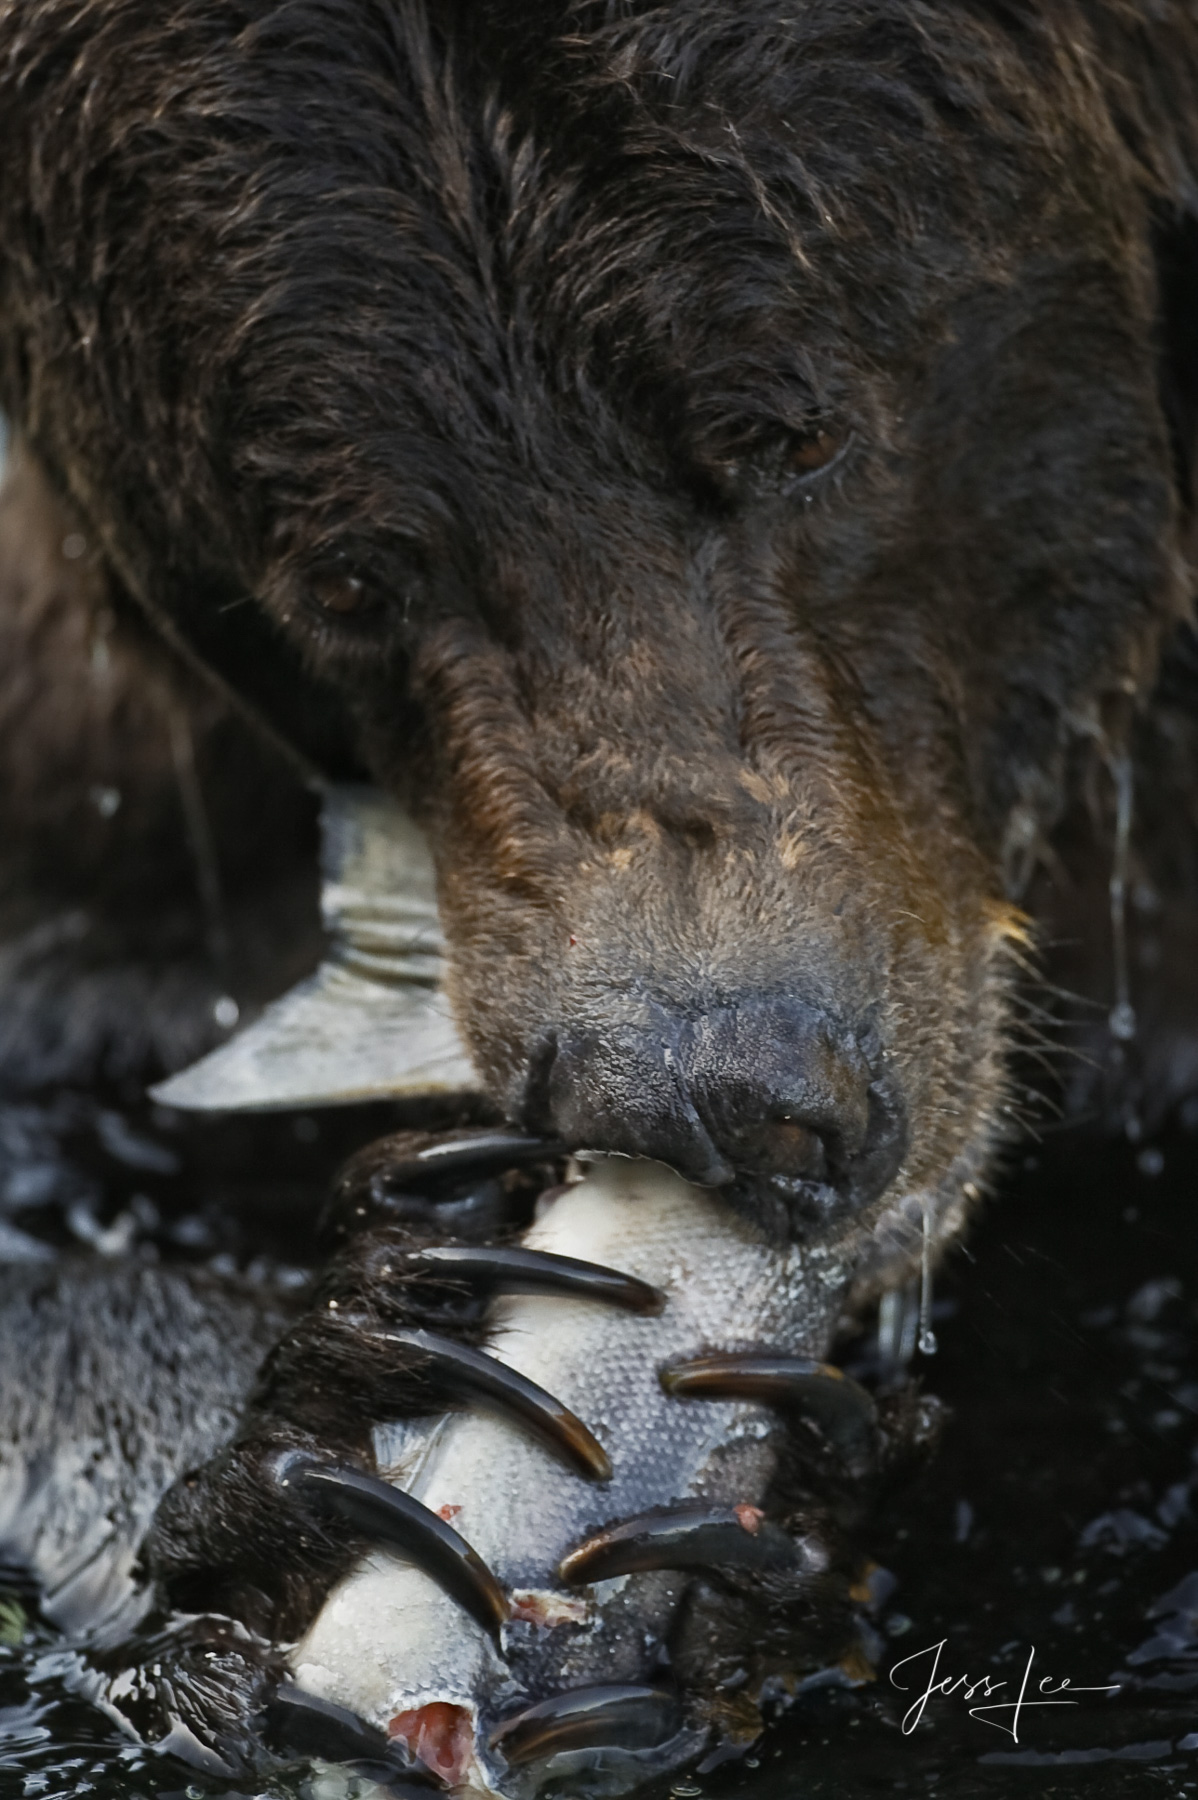 AK, Grizzly, alaska, bear, bear pictures, bears, brown, coastal, grizzlies, grizzly photos, images, photo, photography, photos, pictures, stock, landscape photography, Large format, quality, museum, f, photo